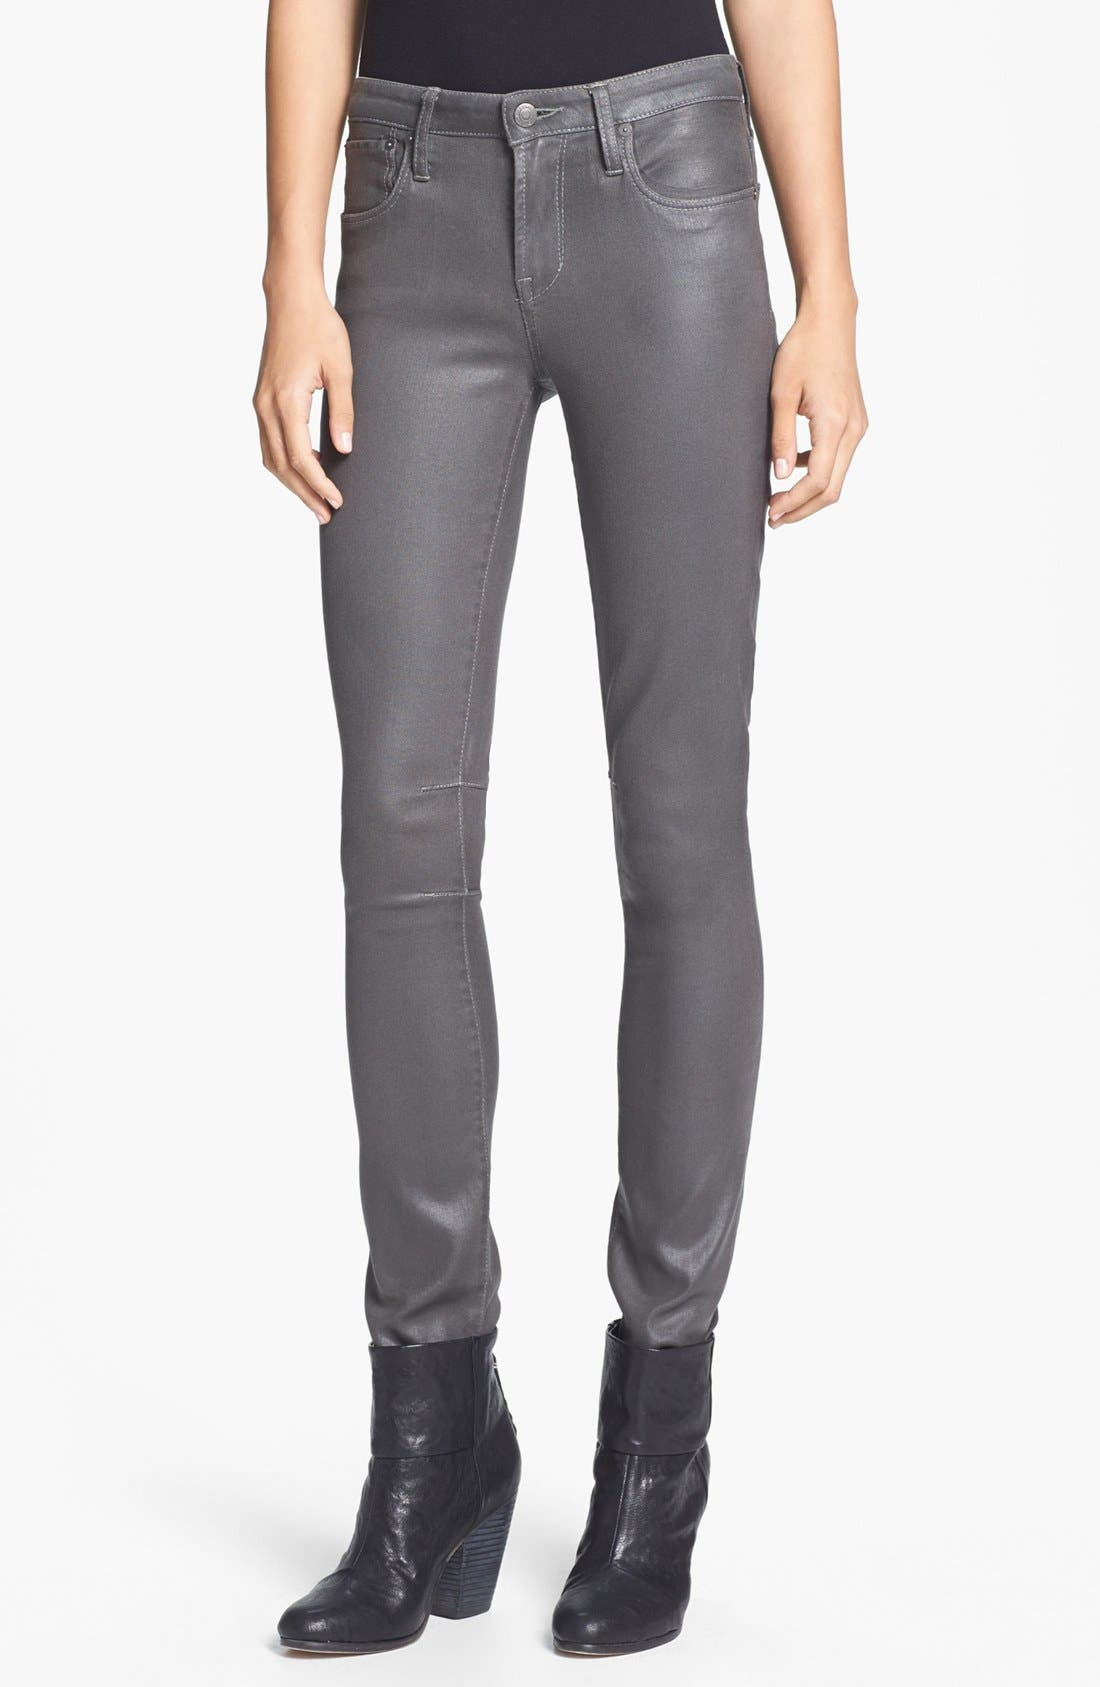 Alternate Image 1 Selected - HELMUT Helmut Lang 'High Gloss' Skinny Pants